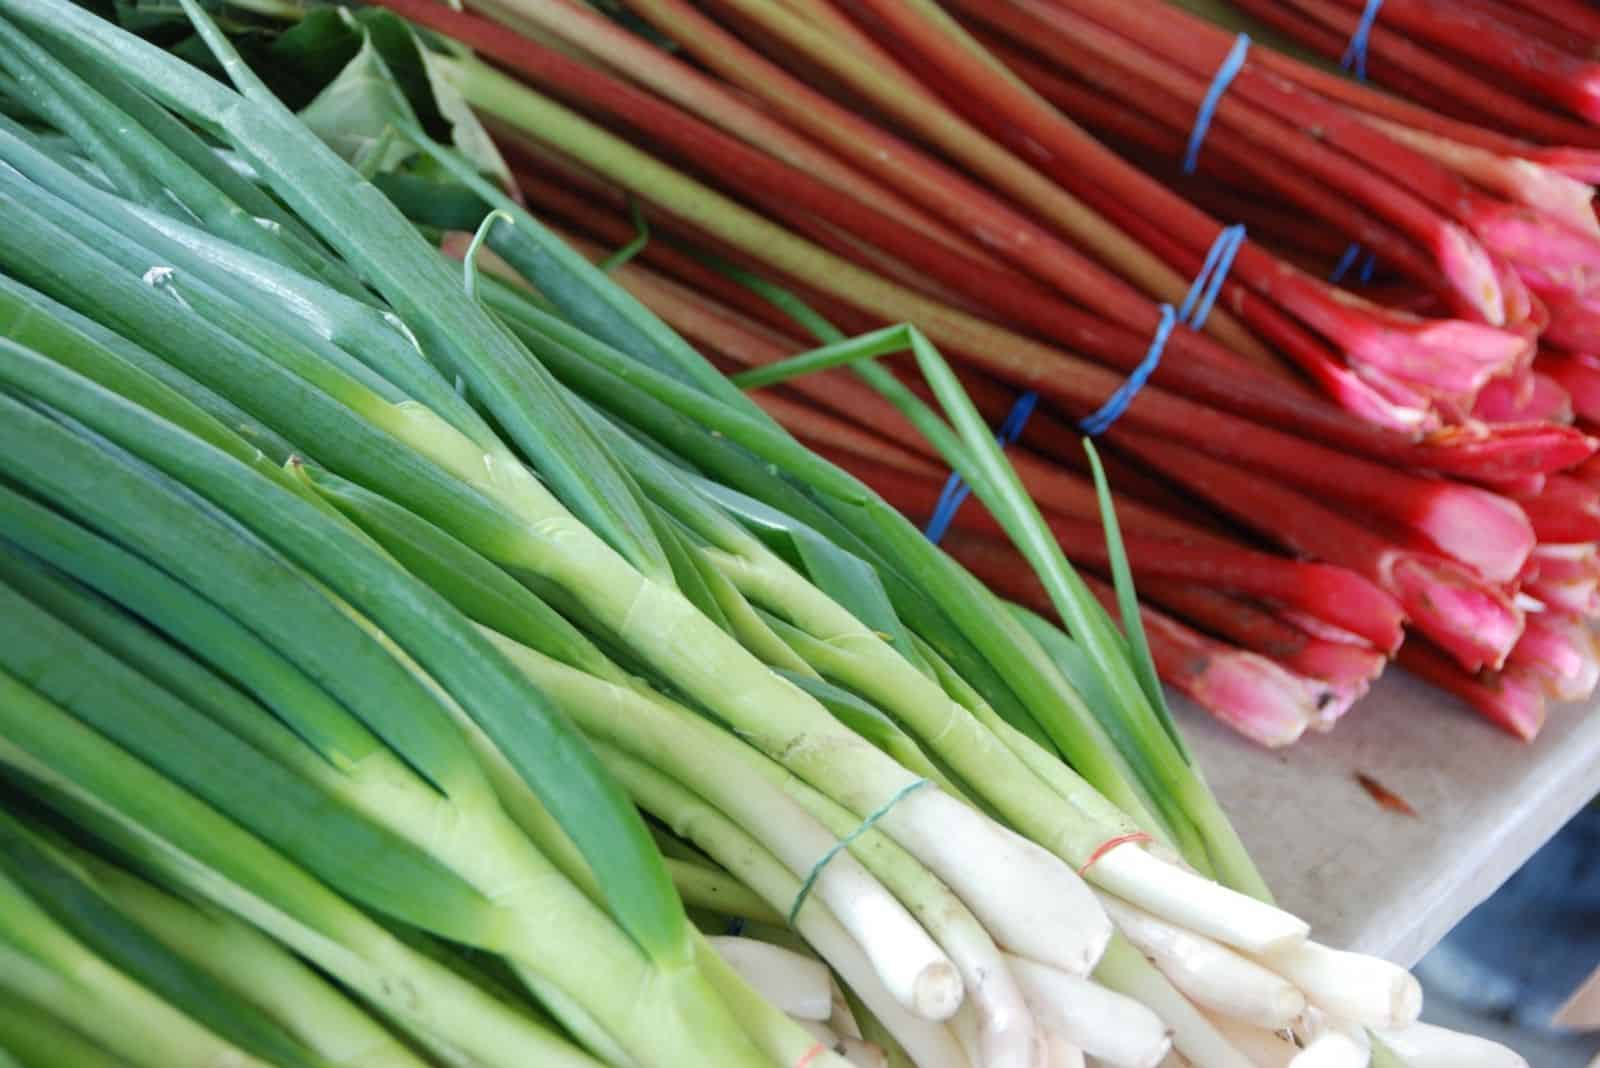 fresh onion and rhubarb in the market